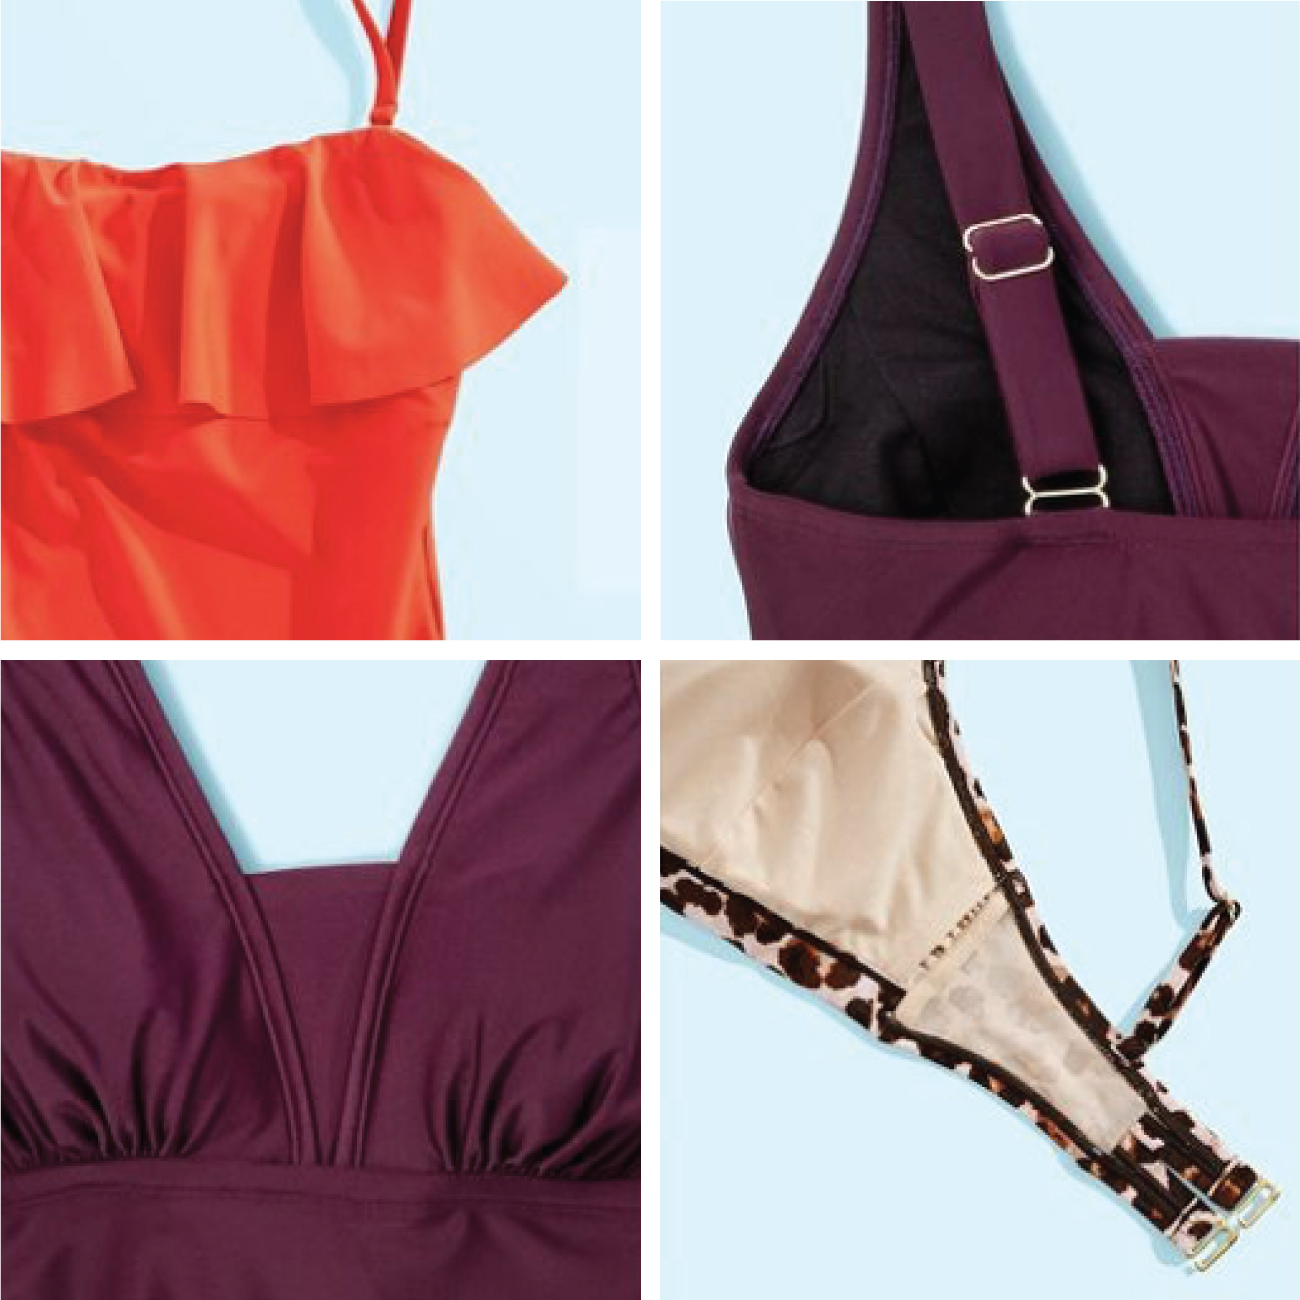 A collage of four images show up-close details of swimsuits